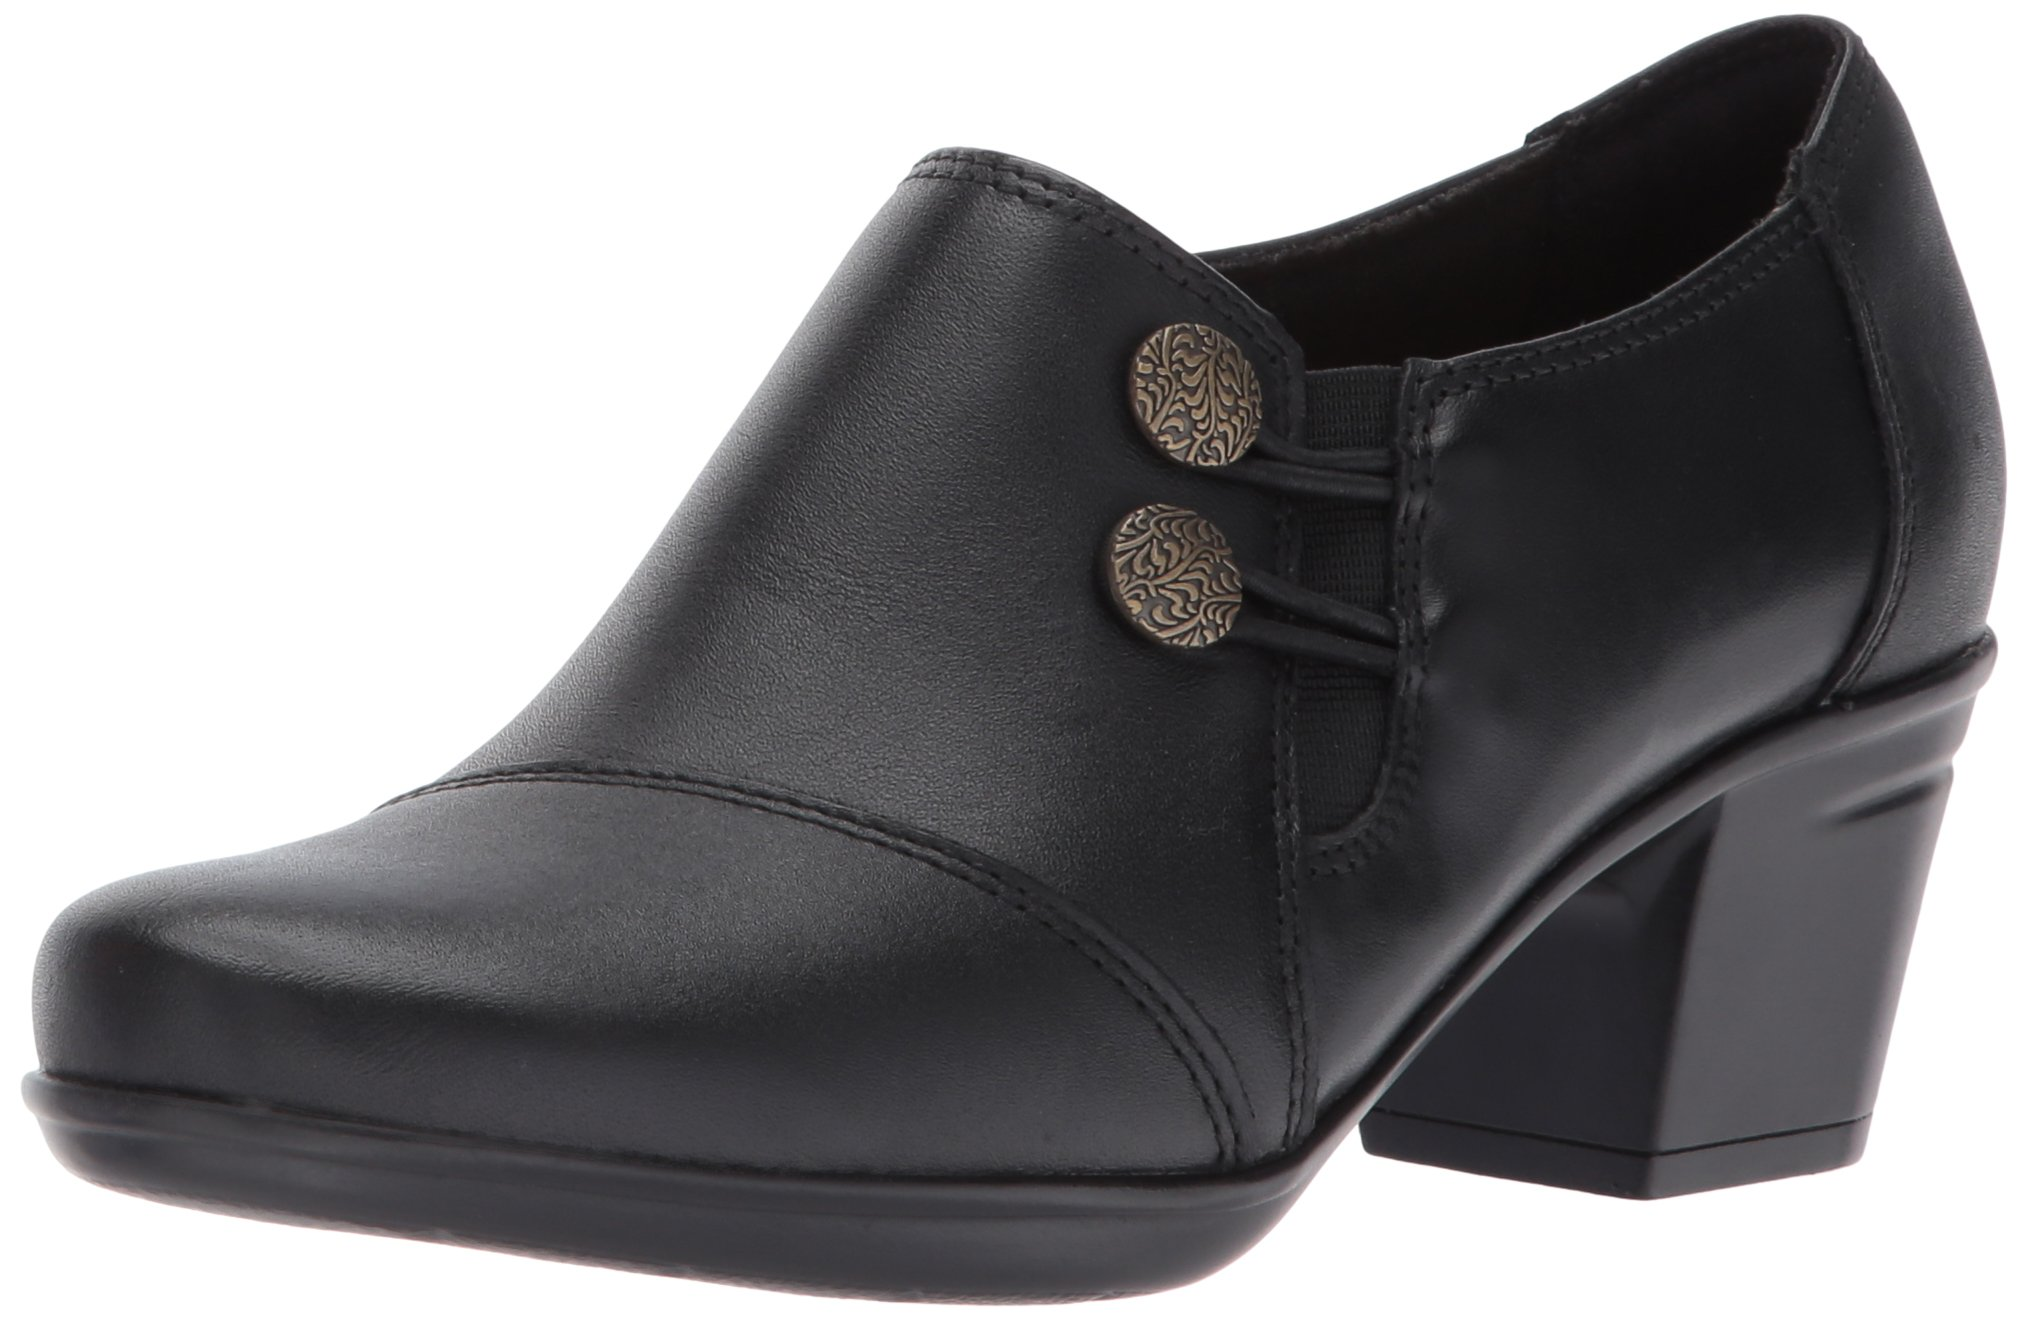 CLARKS Women's Emslie Warren Slip-on Loafer,Black Leather,11 M US